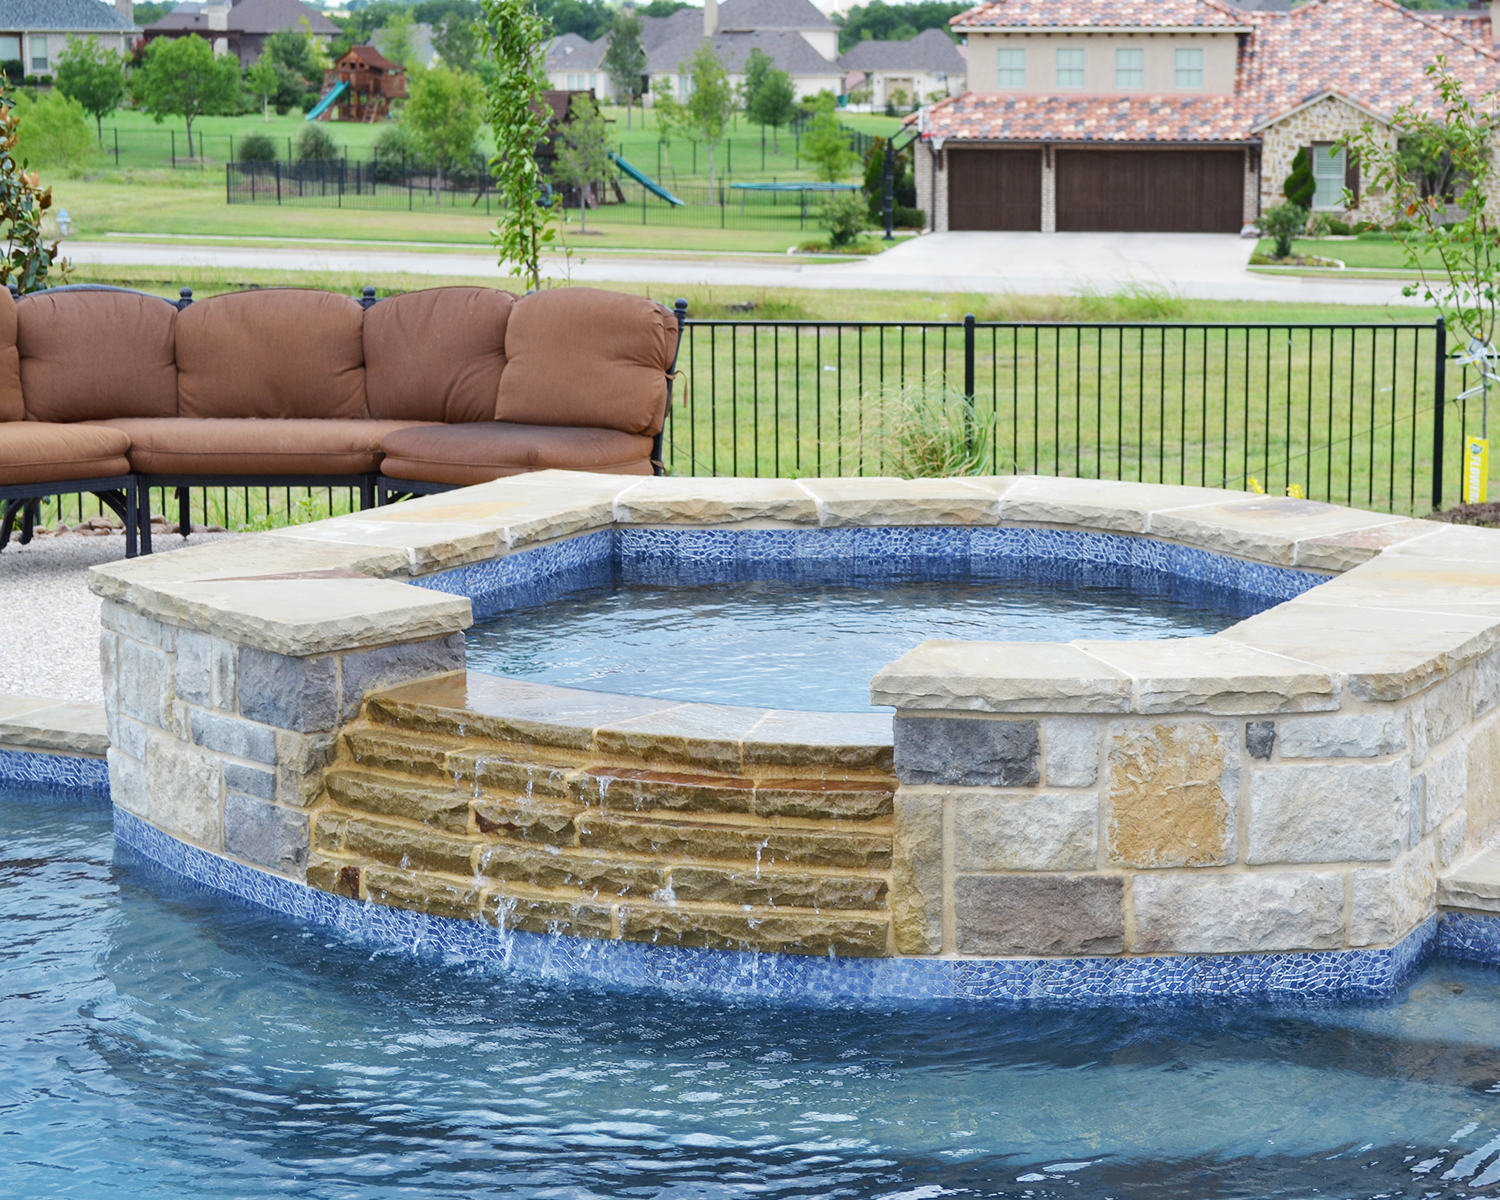 LakePointePools-custom-features-hot-tub.jpg